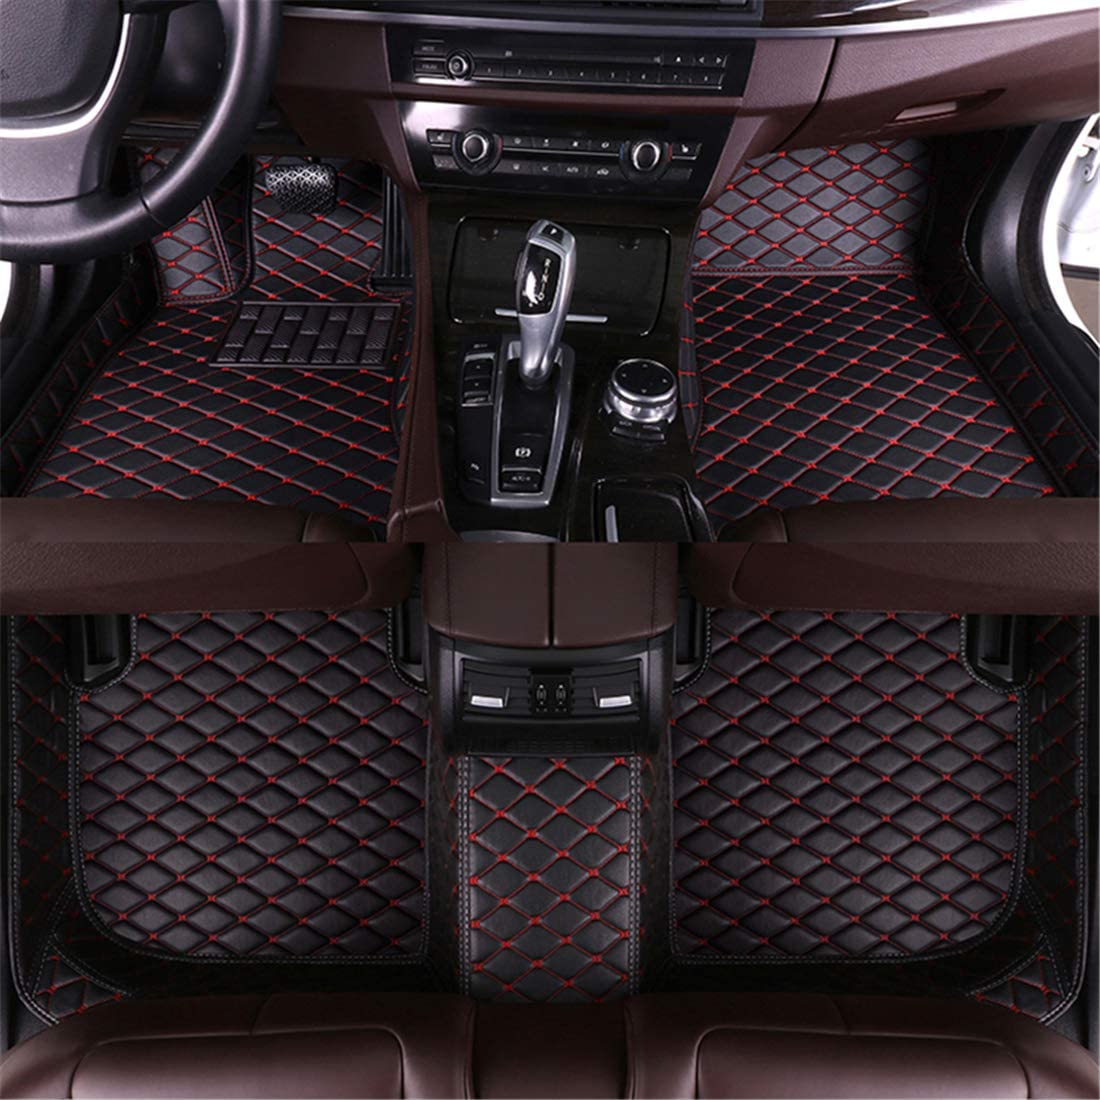 Muchkey car Floor Mats fit for Nissan Altima 2013-2018 Full Coverage All Weather Protection Non-Slip Leather Floor Liners Black-Red